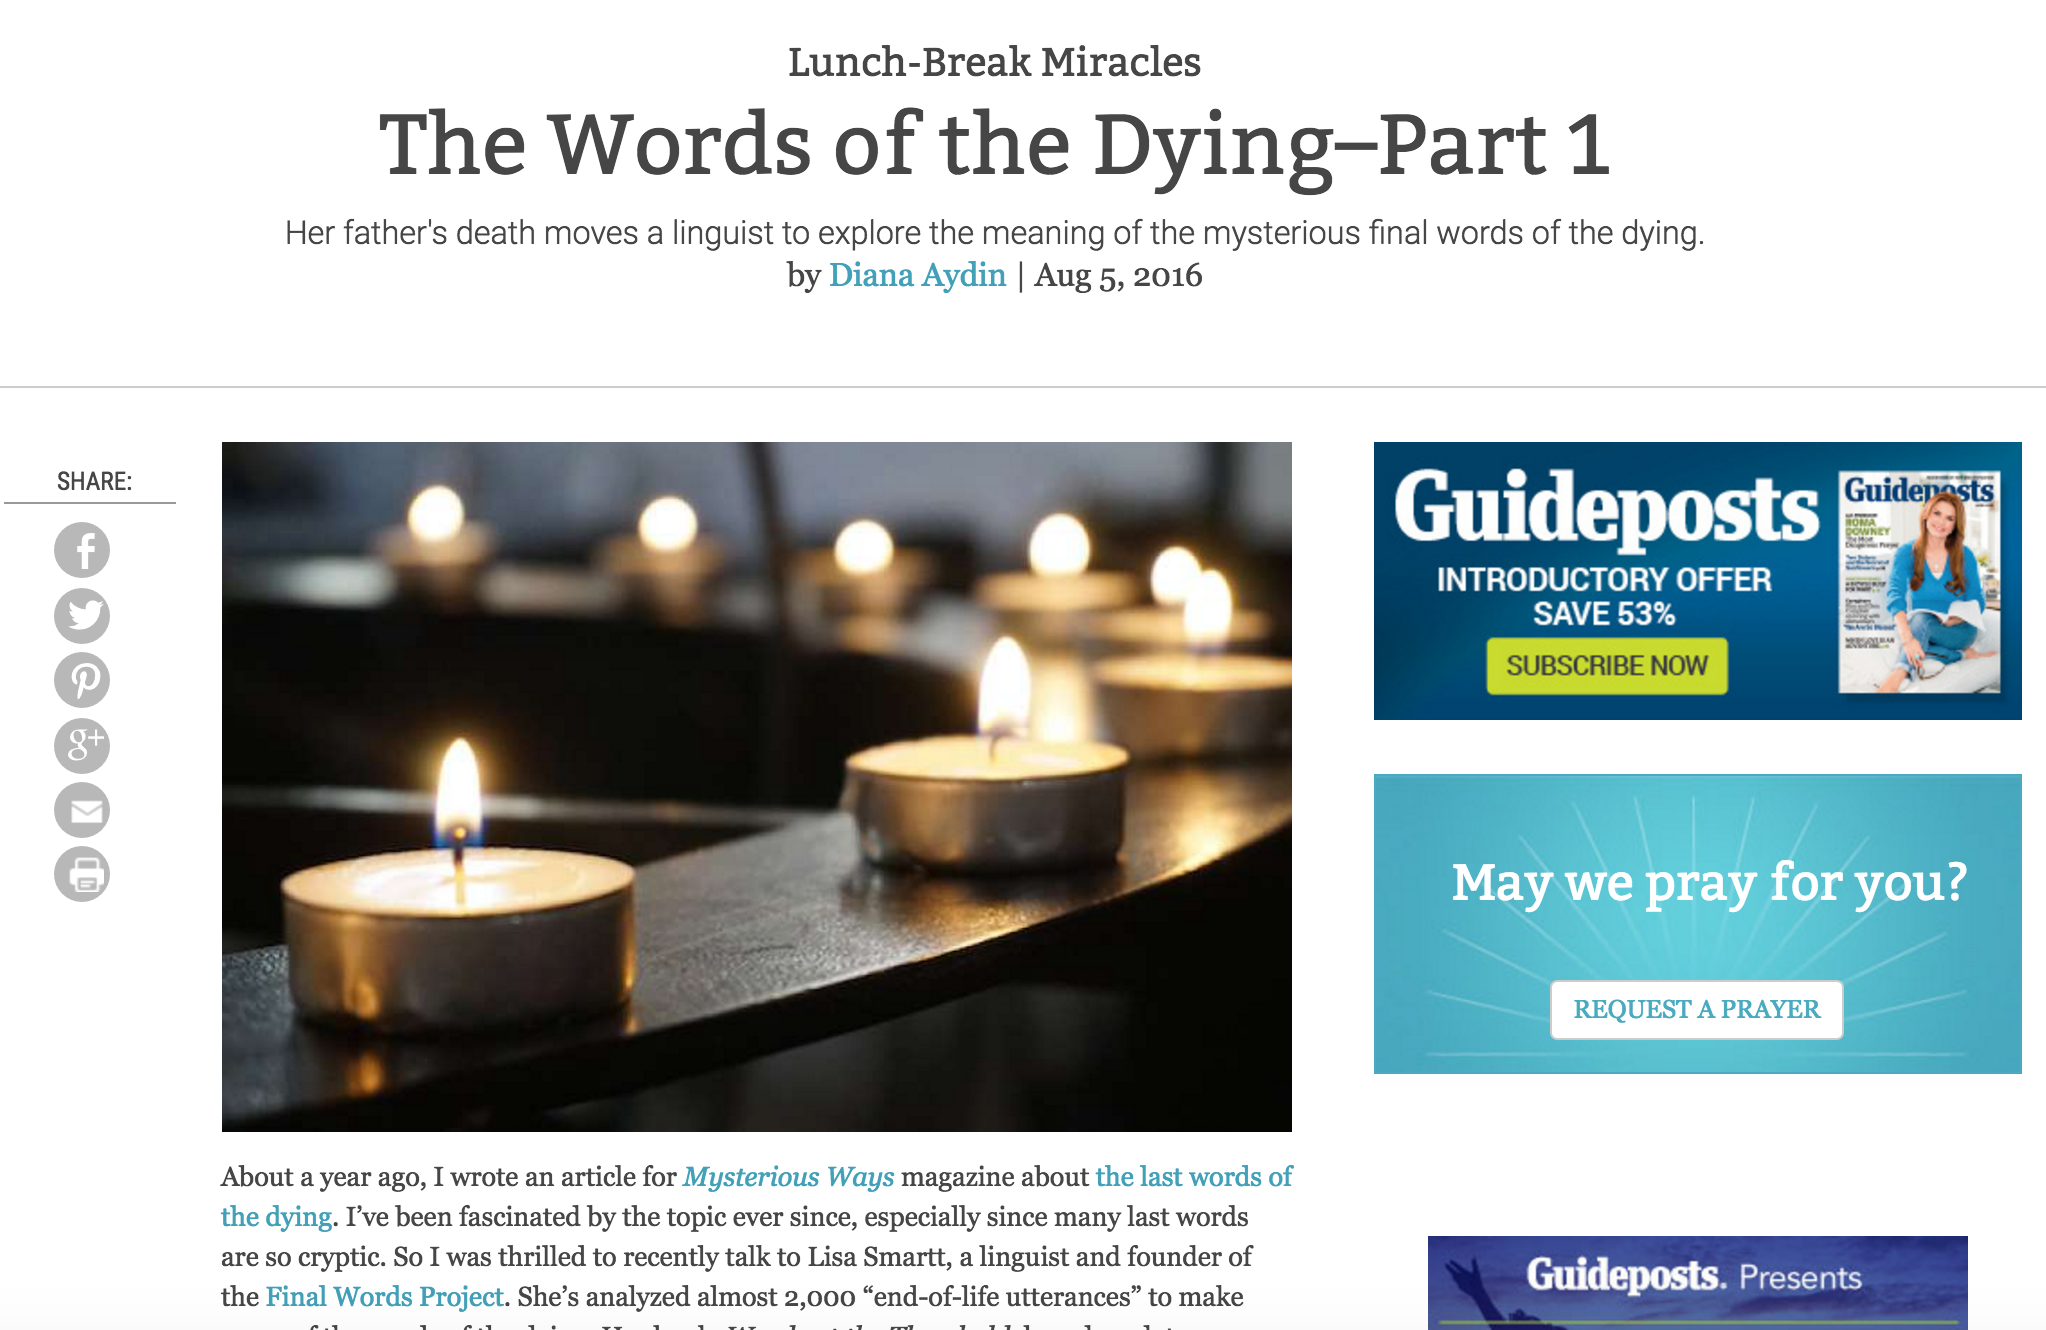 The Words of the Dying - Part 1